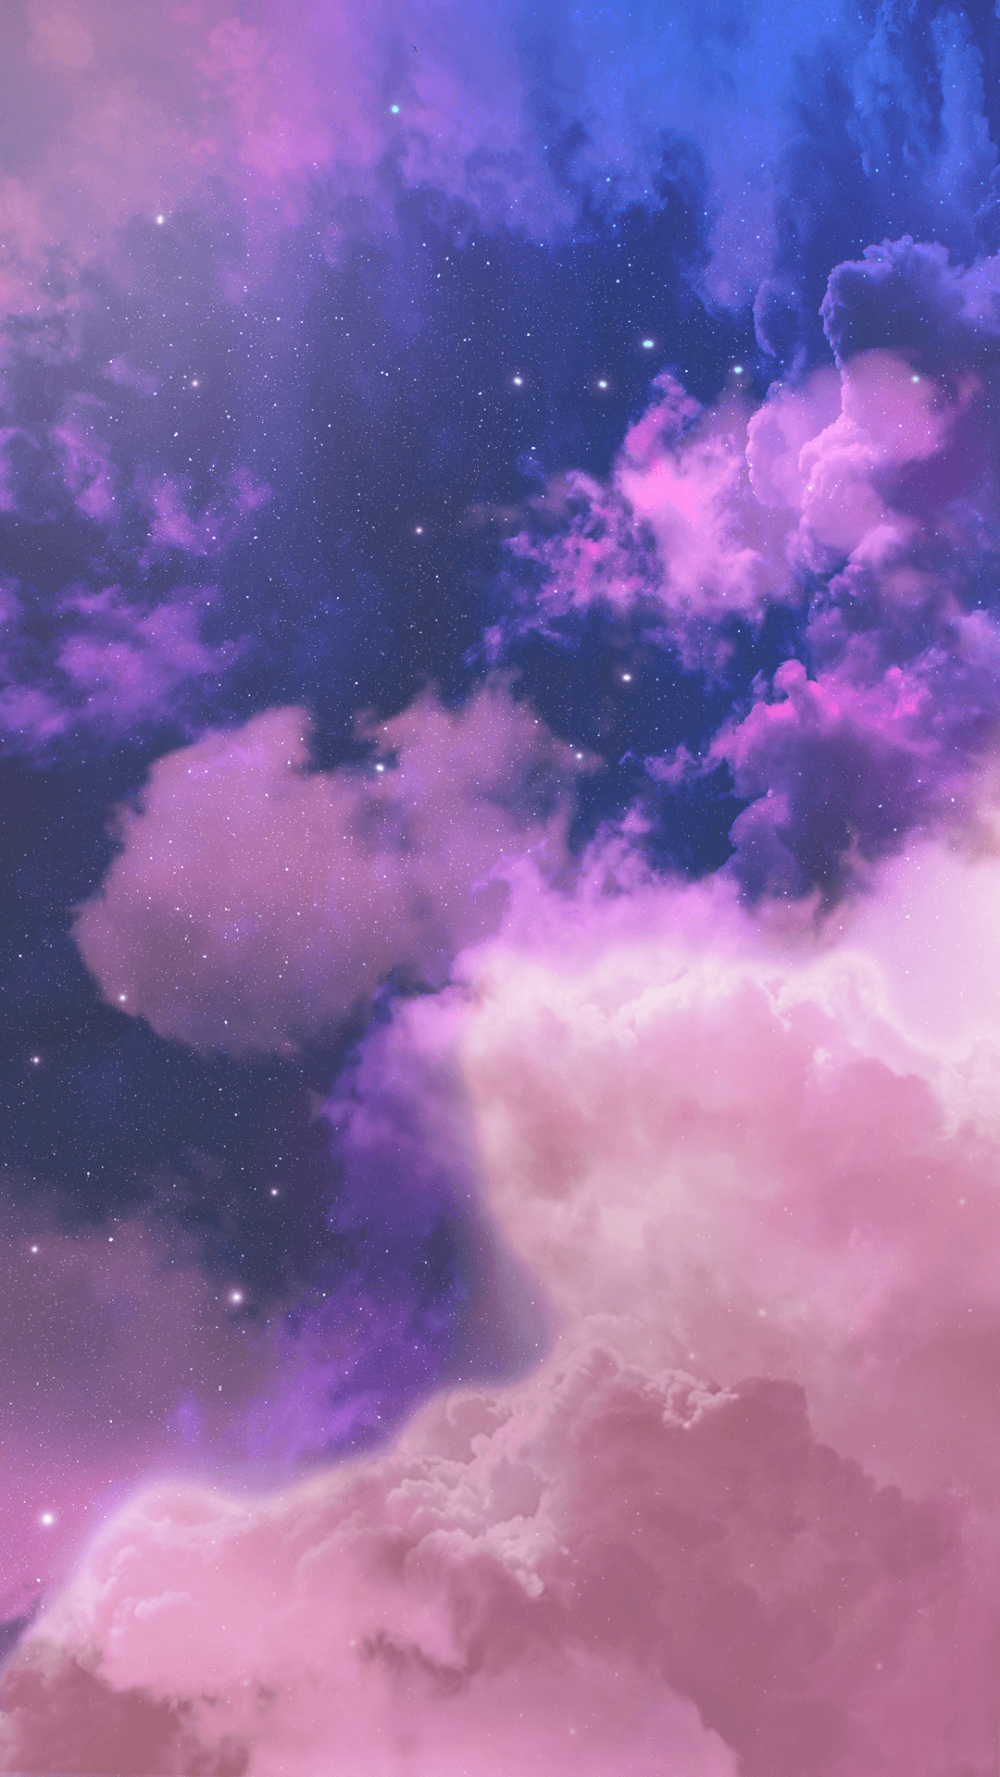 Aesthetic Pink And Blue Clouds Wallpaper